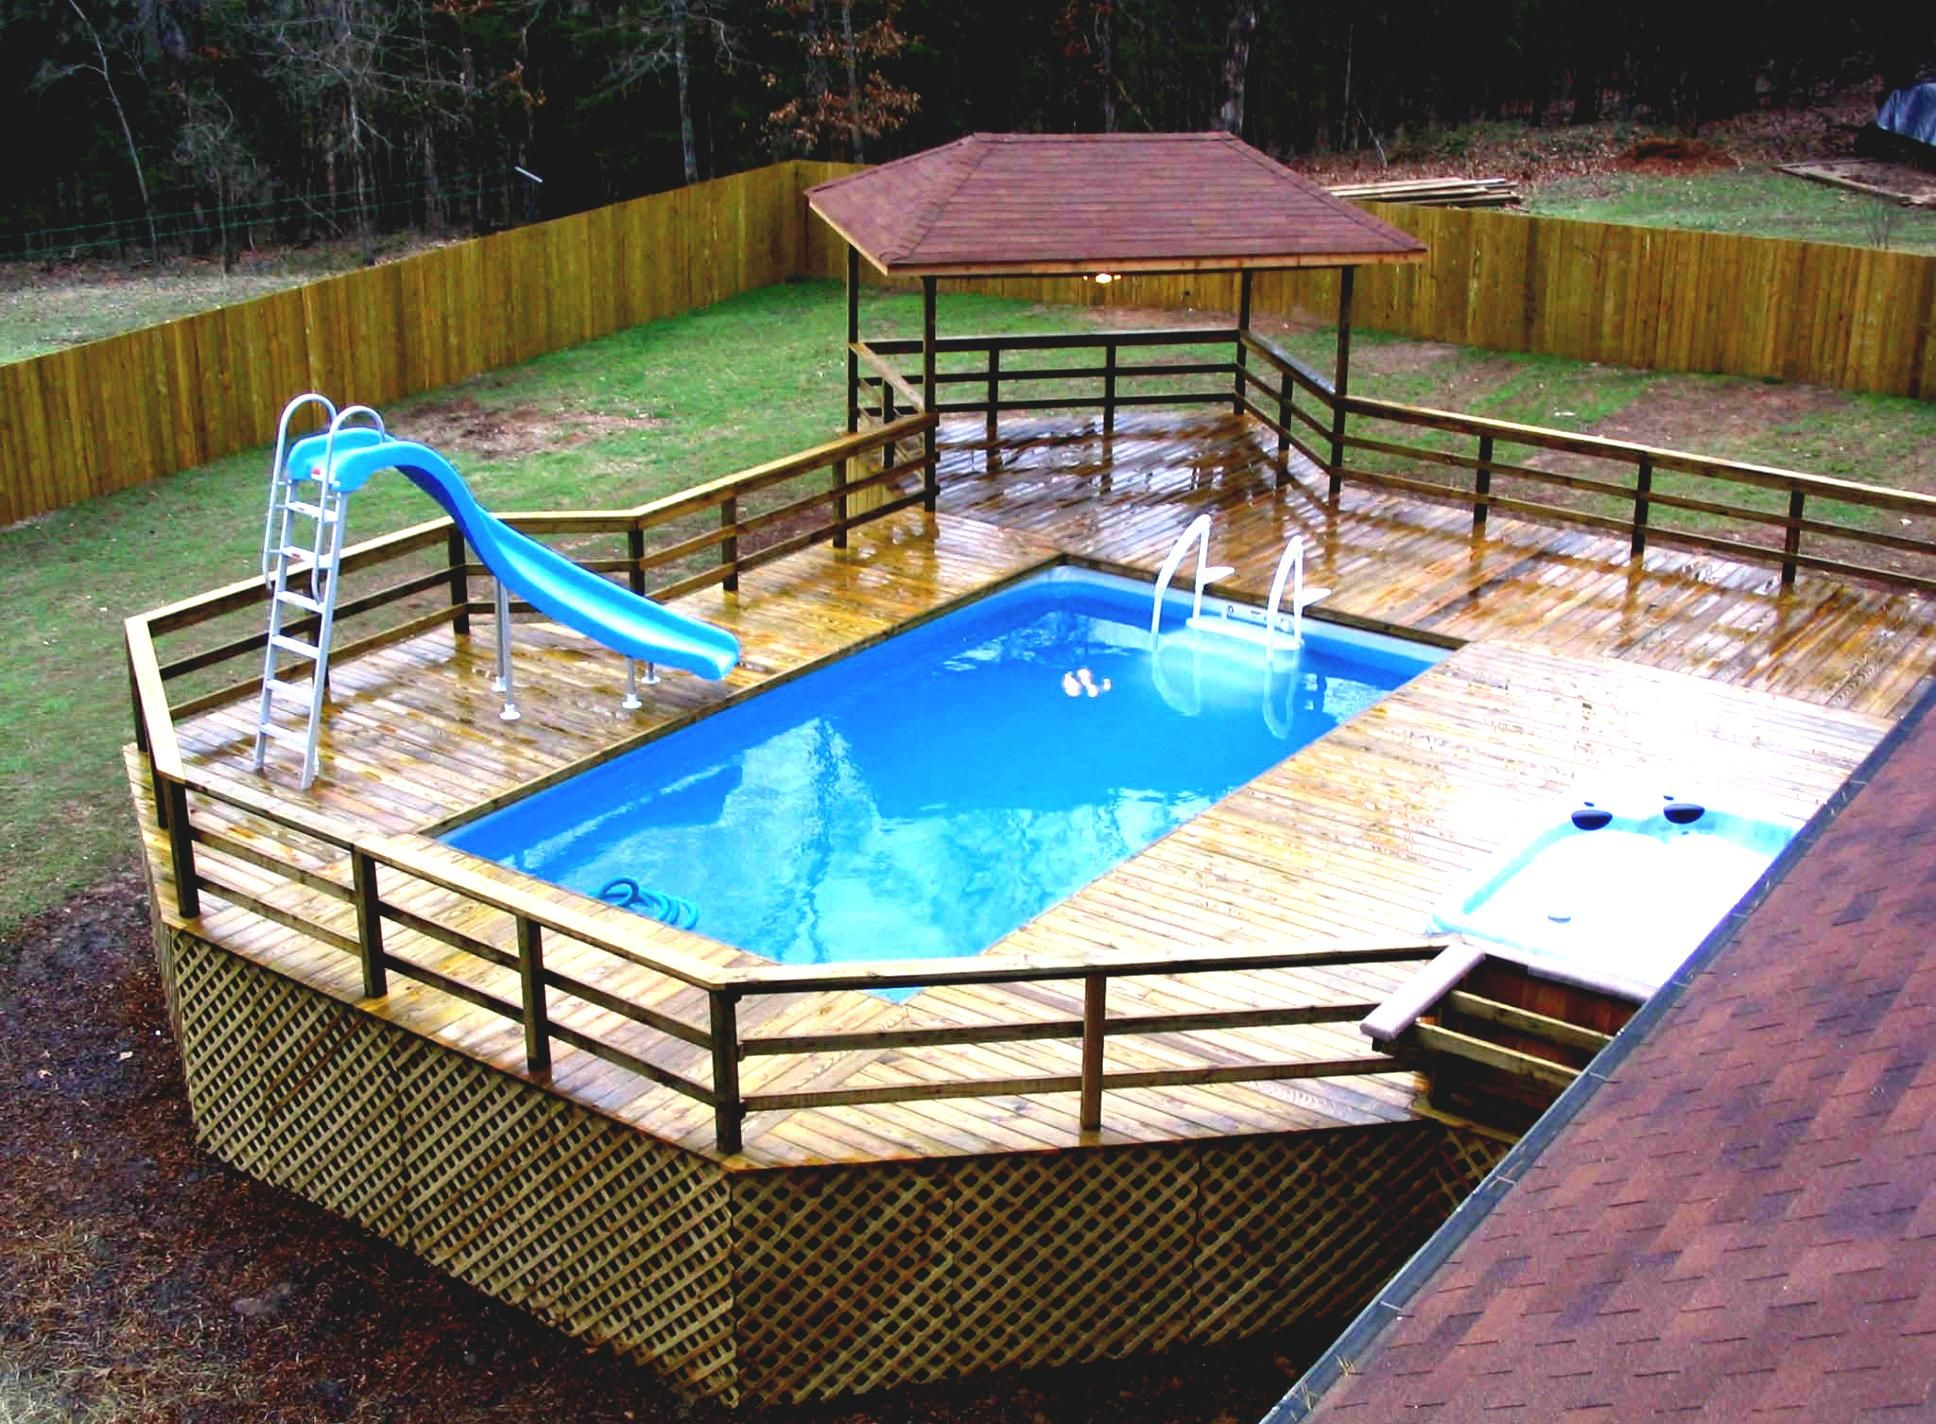 Intex above ground pool landscaping ideas pdf backyard Above ground pool patio ideas